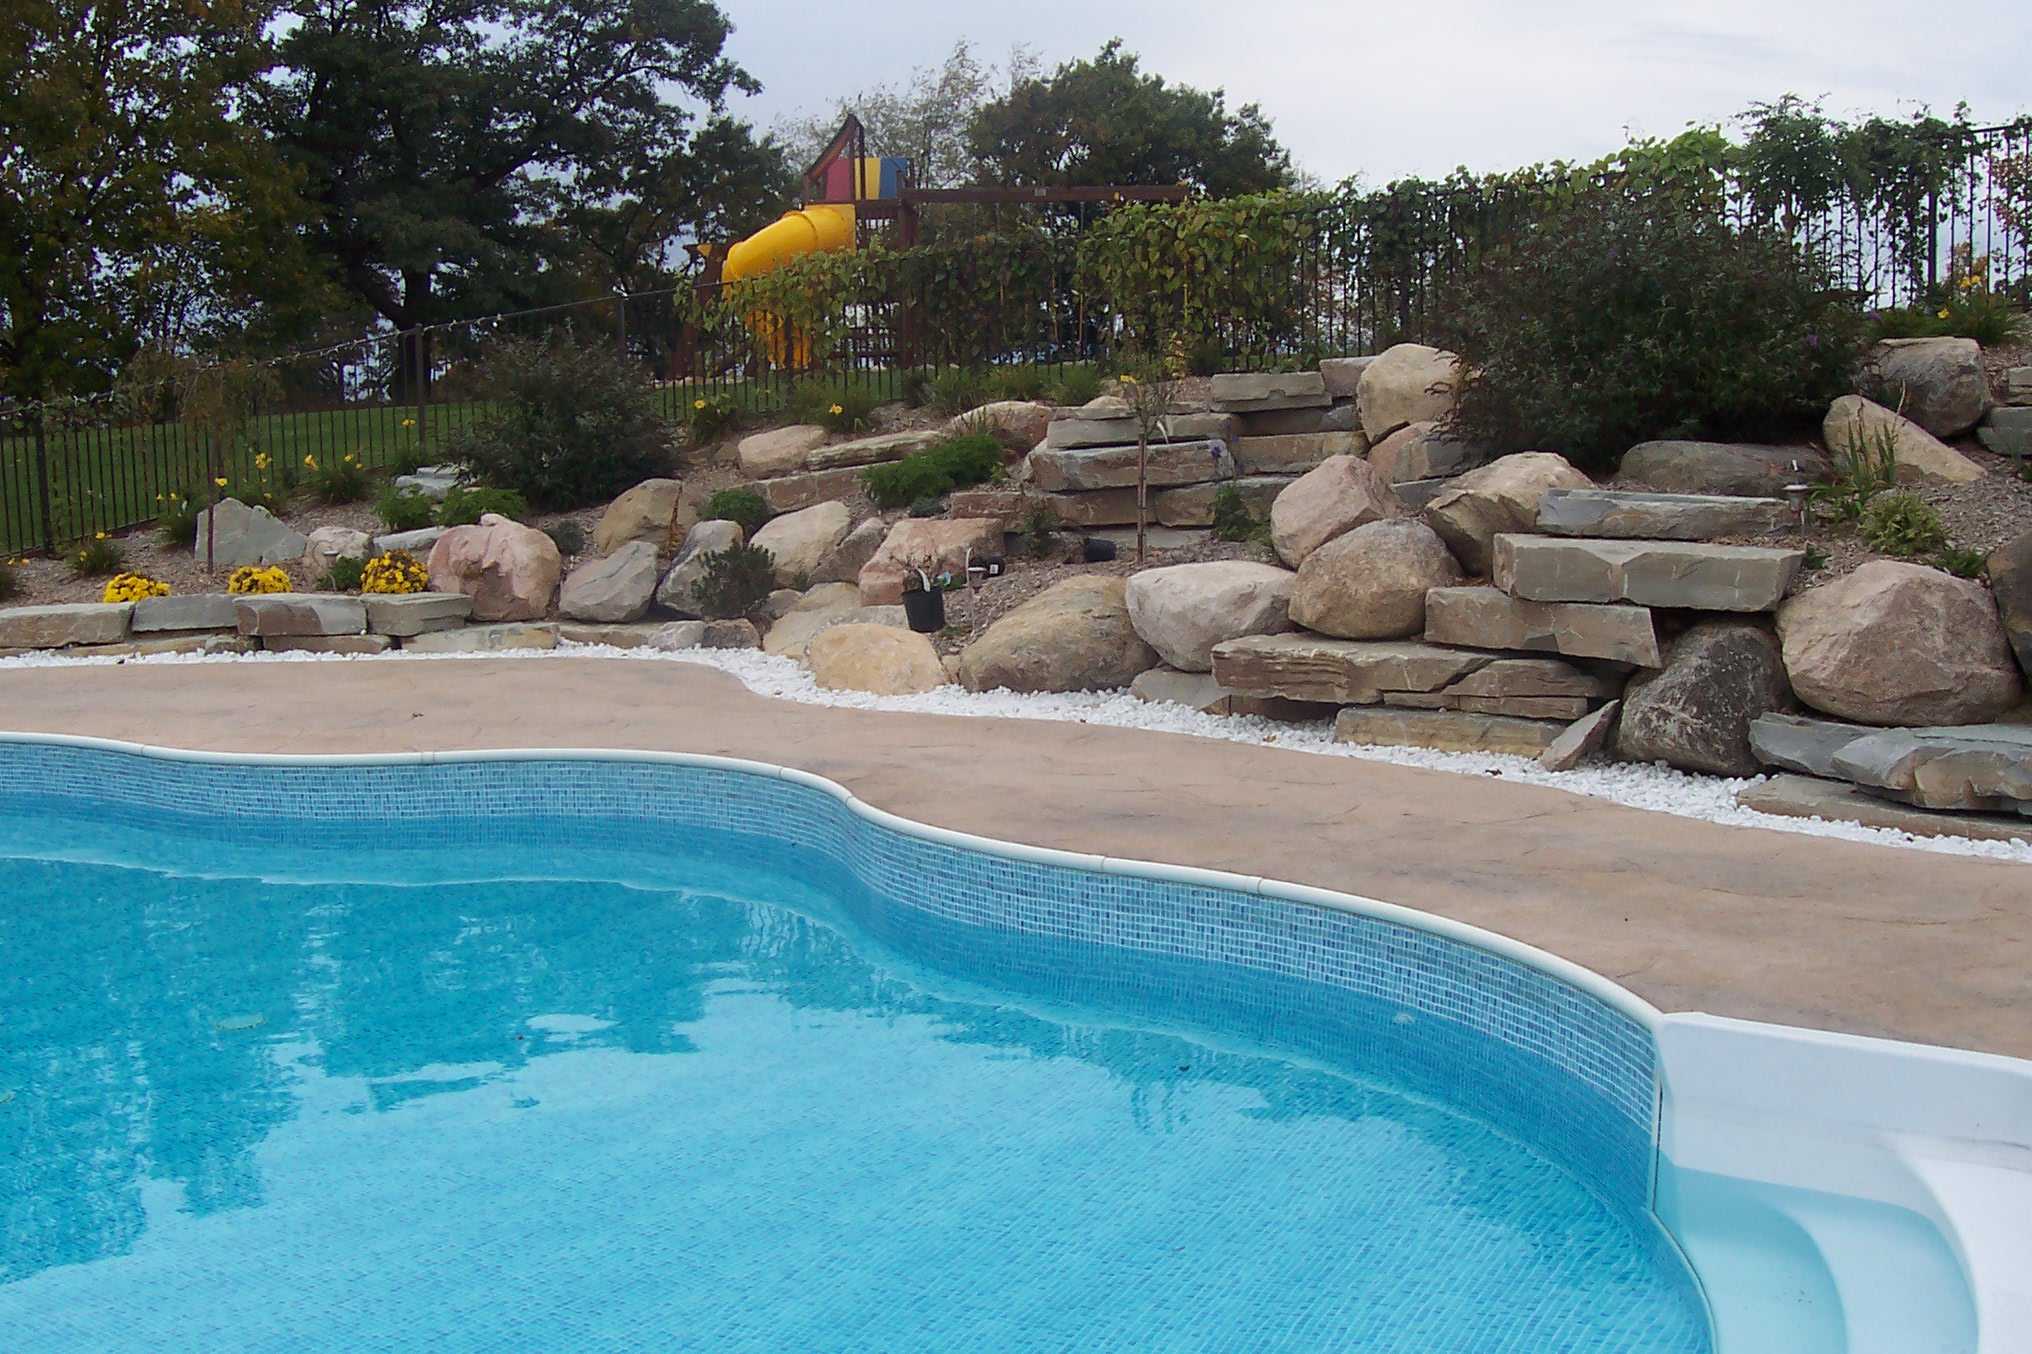 Example Of A Pool With Standard Coping Liner Track All As One Piece